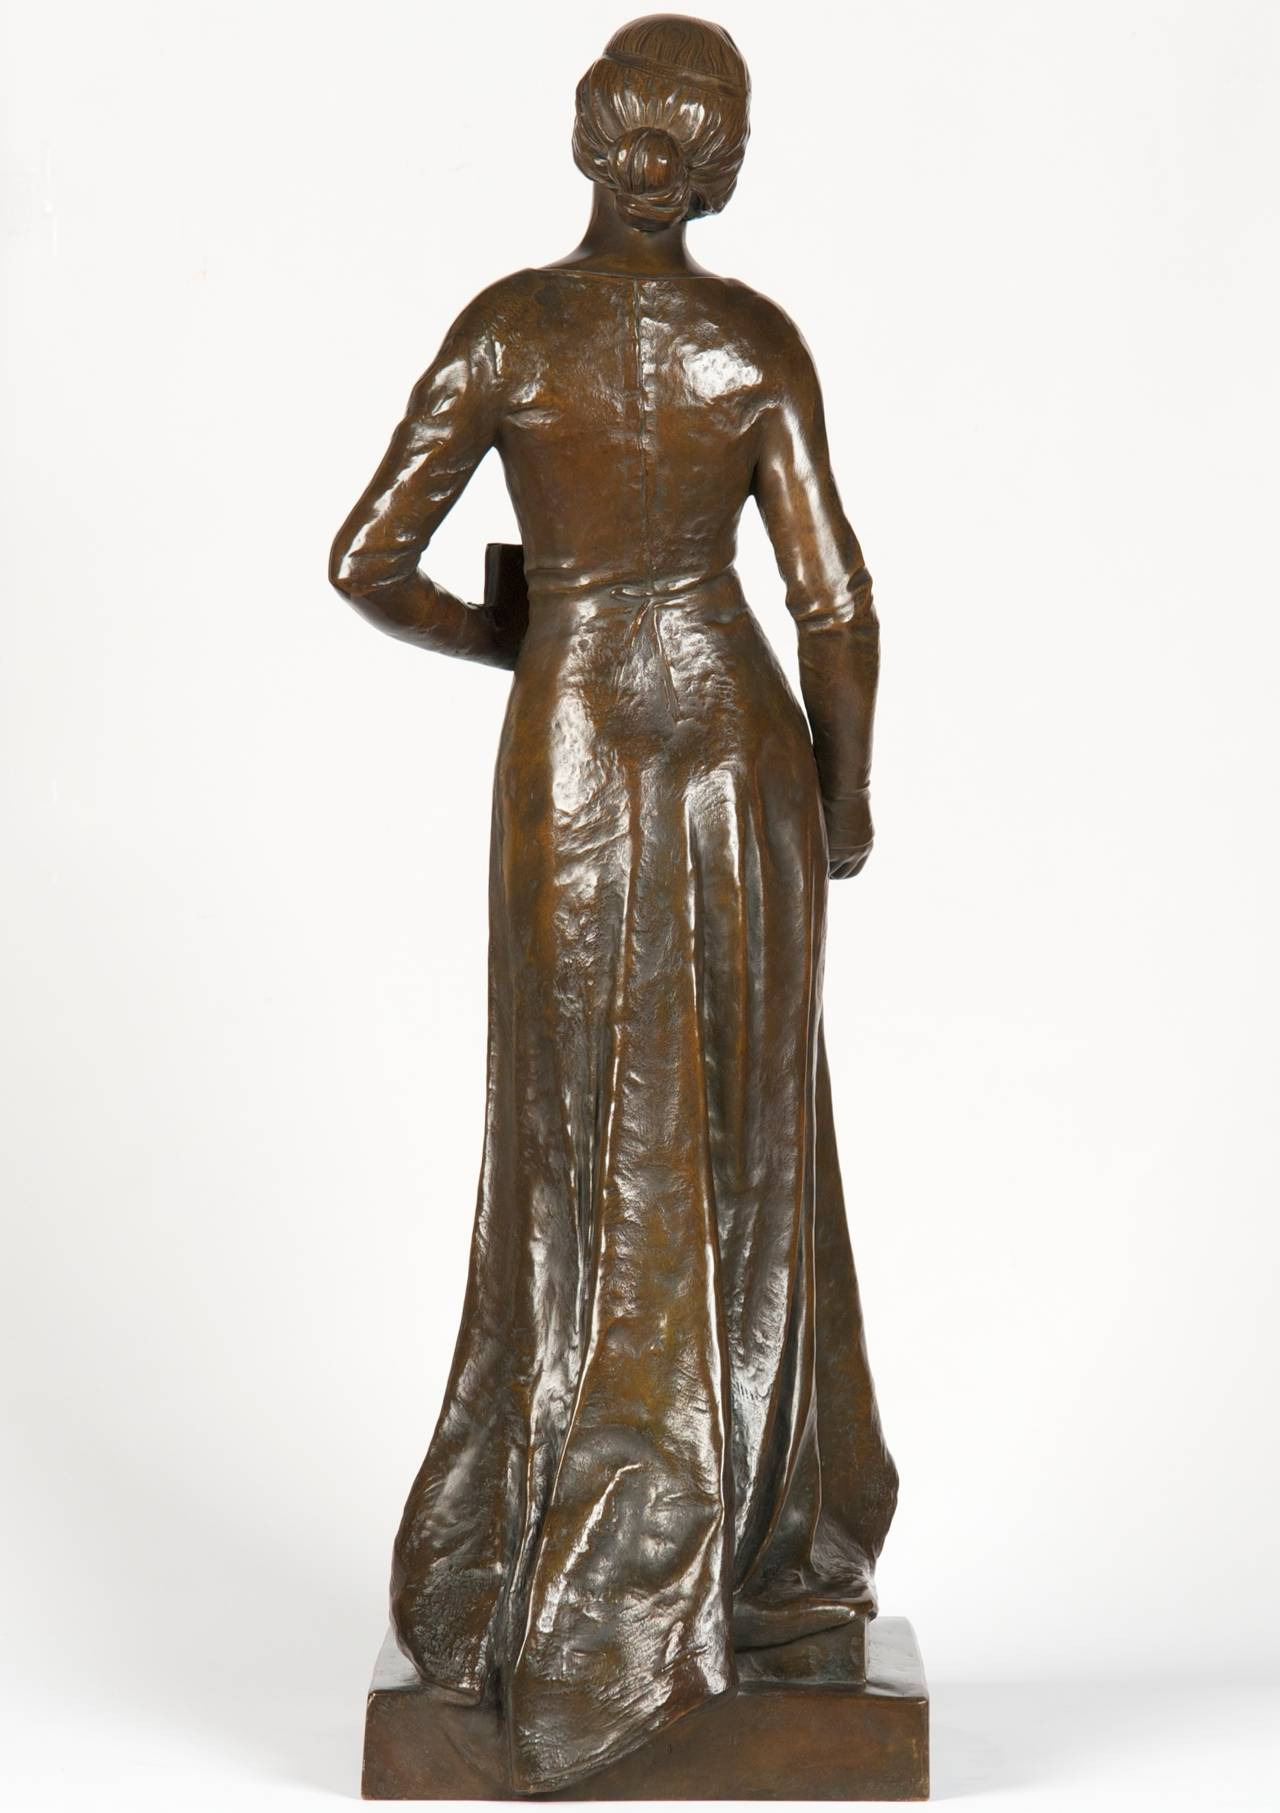 Patinated Henri Levasseur Antique French Bronze Sculpture of Maiden with Rosary, 1900